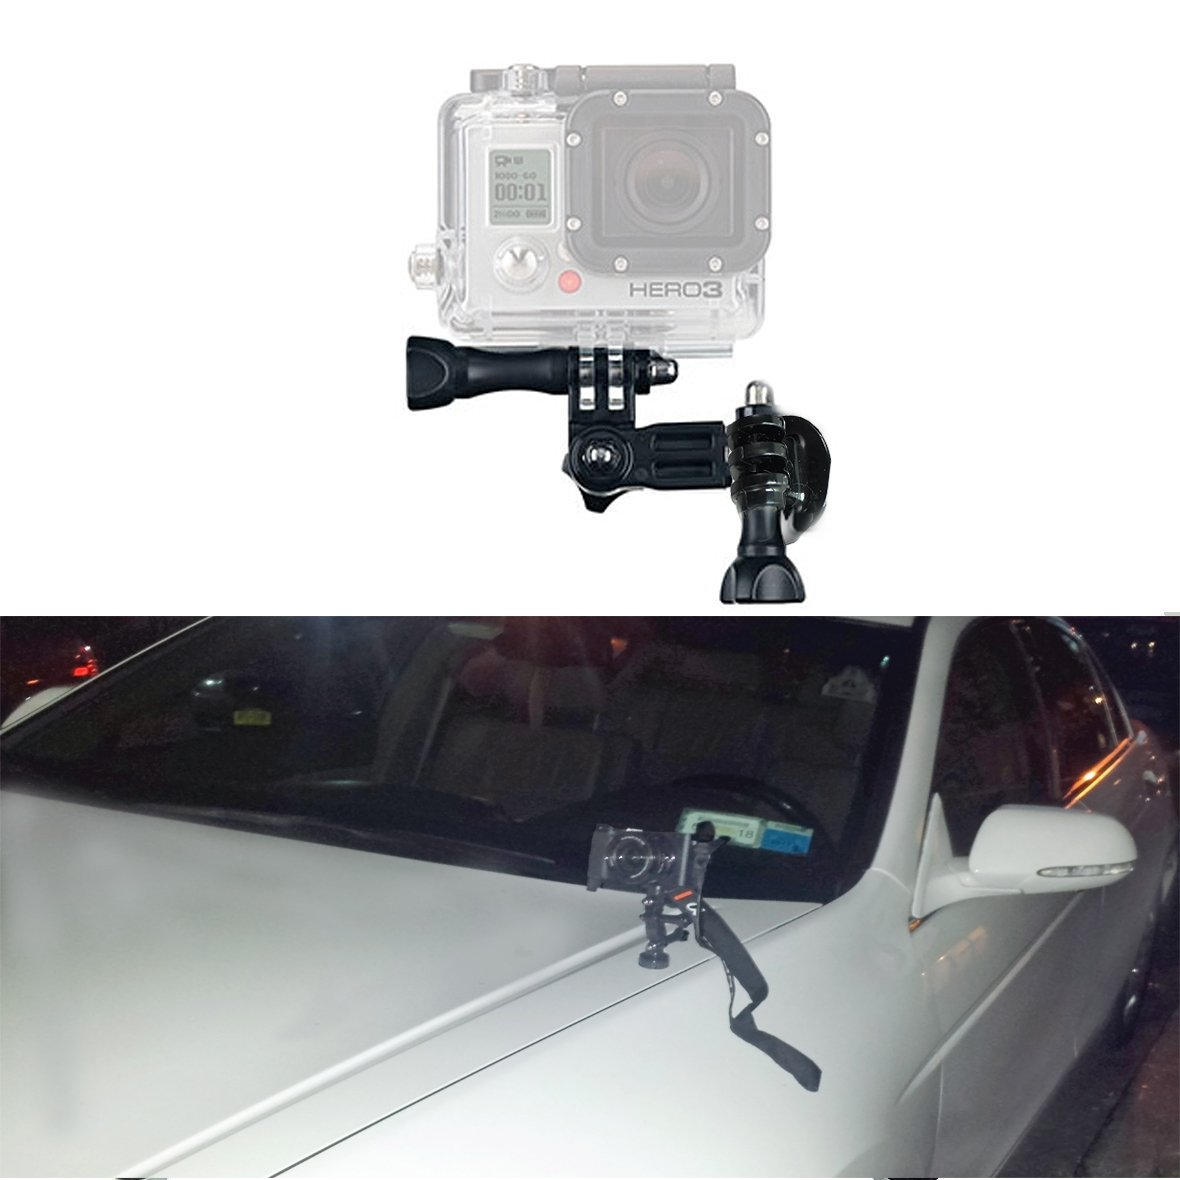 Rubber Coated Magnet Mount with Arm Extensions for GoPro Sony Alphas and other cameras